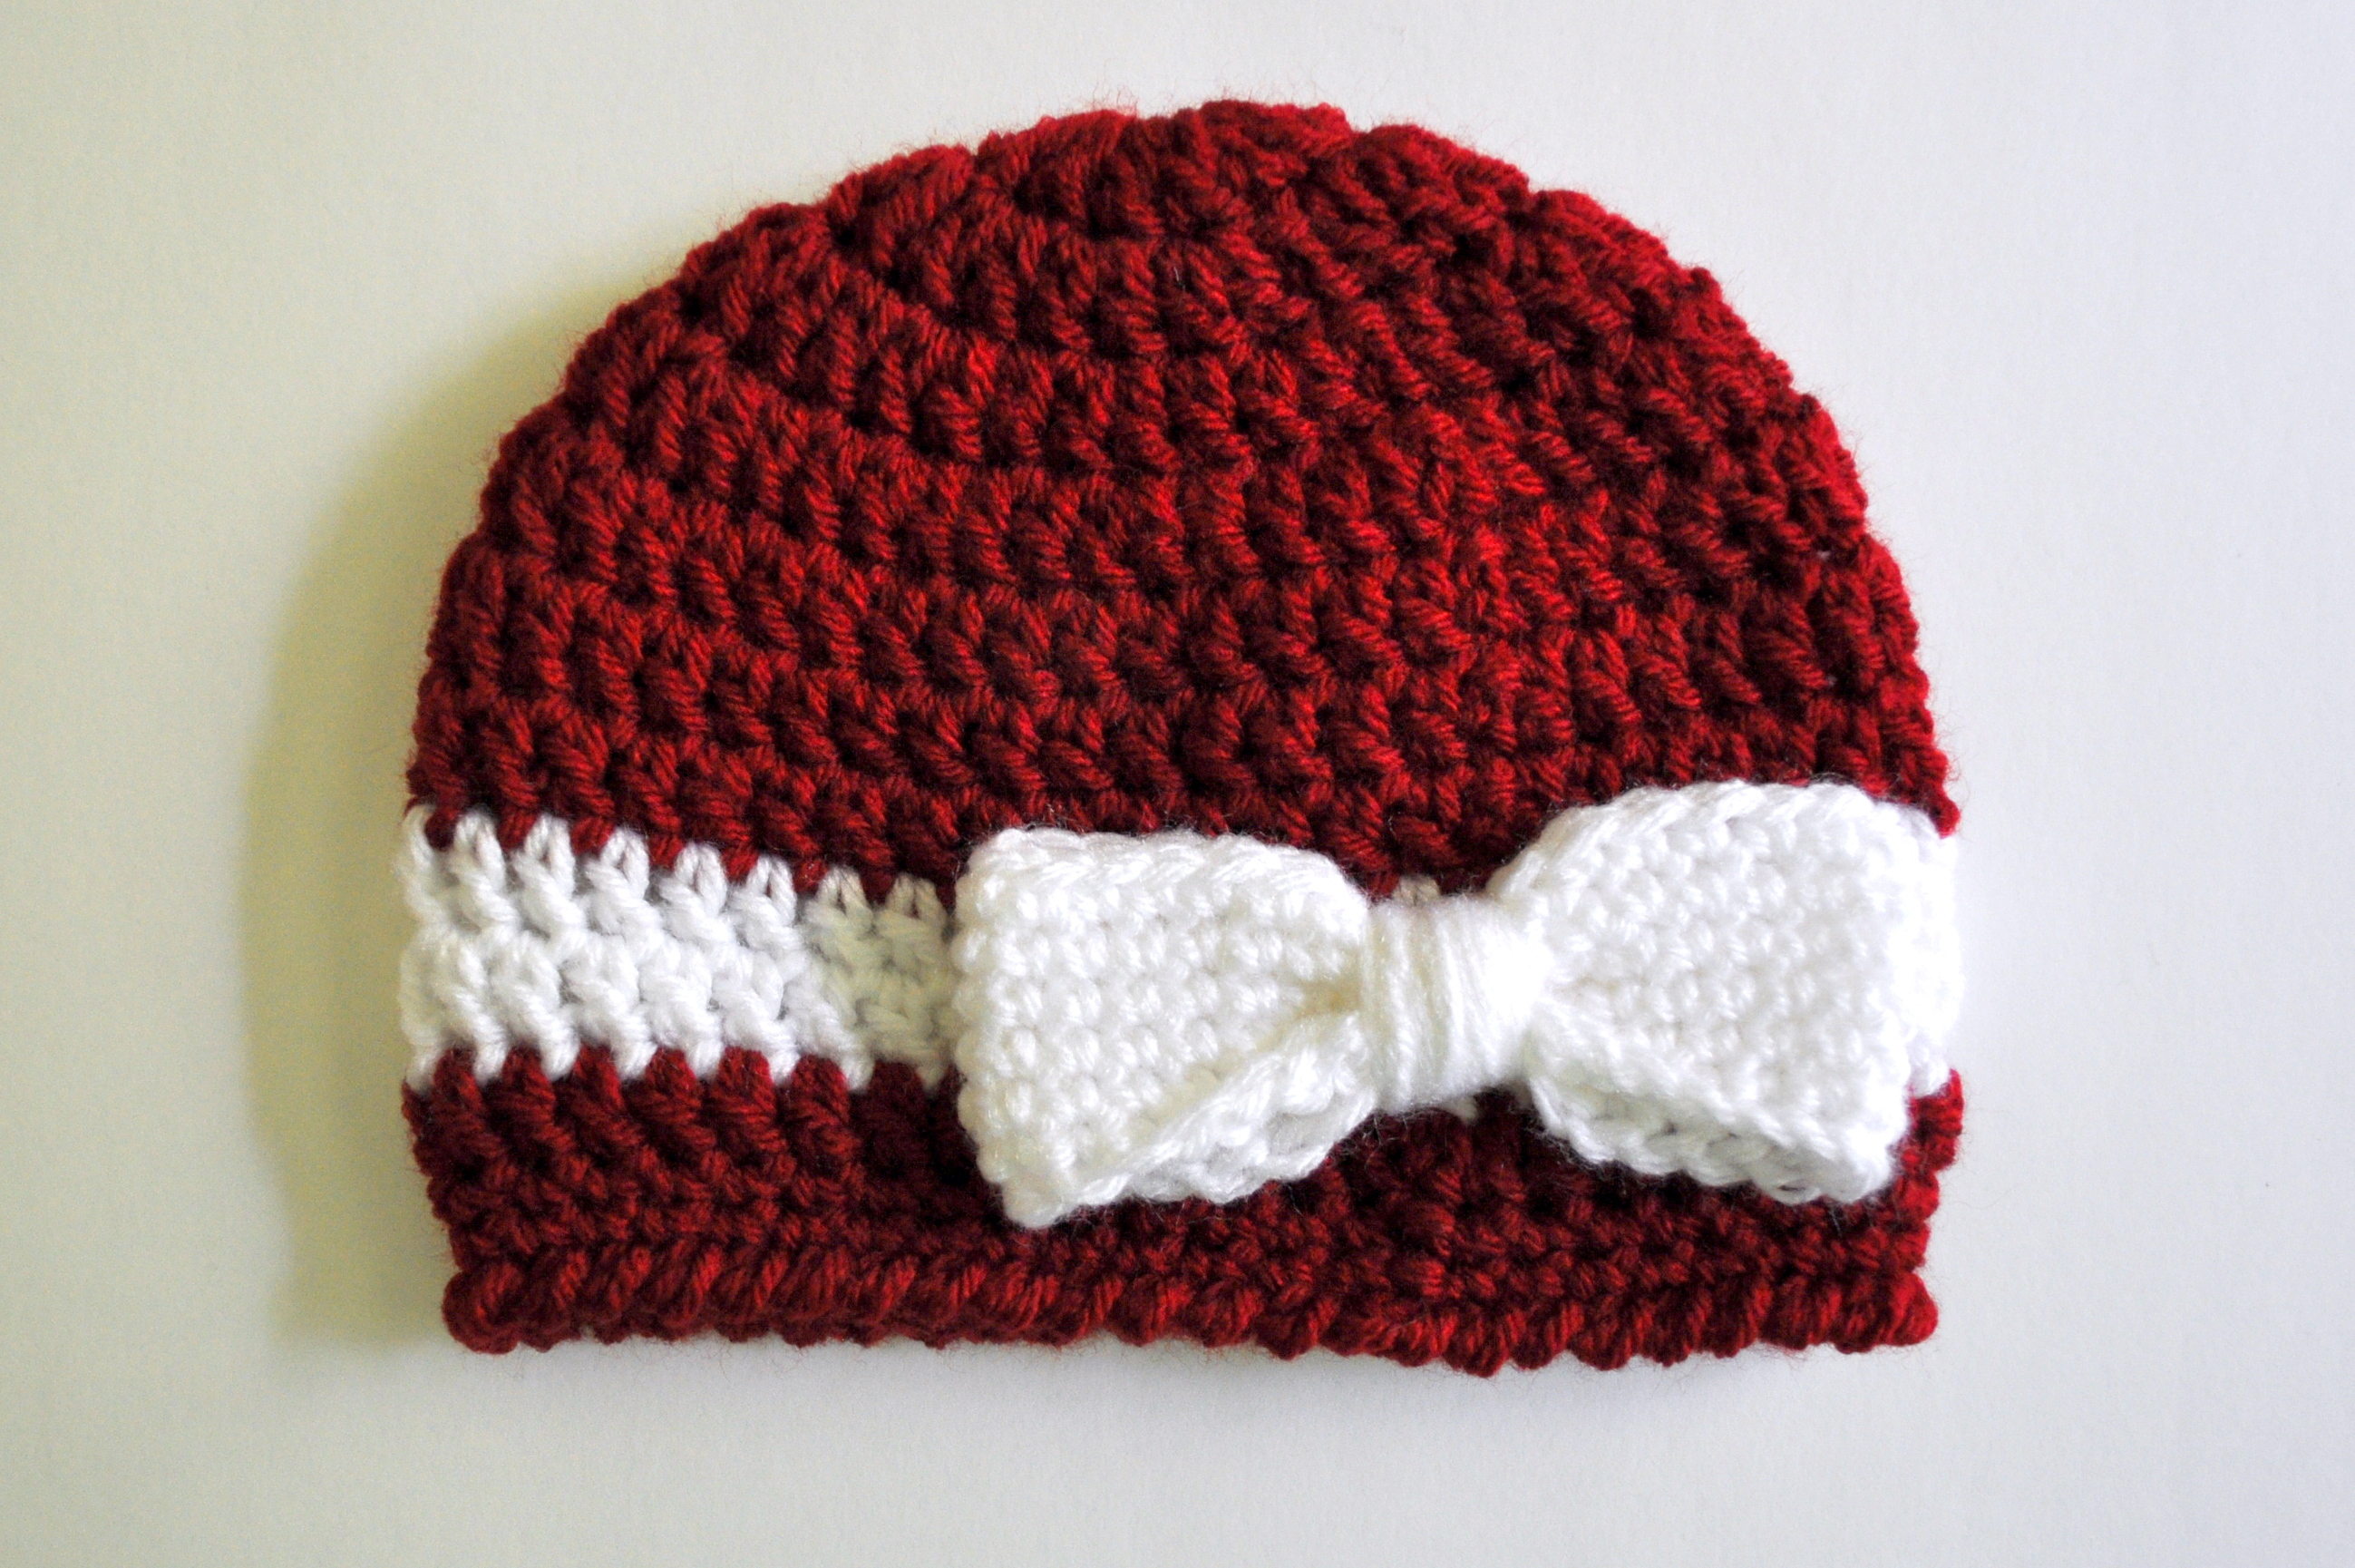 Free pattern crochet bow and ribbon baby hat classy crochet crochet ribbon and bow baby hat pattern classy crochet bankloansurffo Image collections